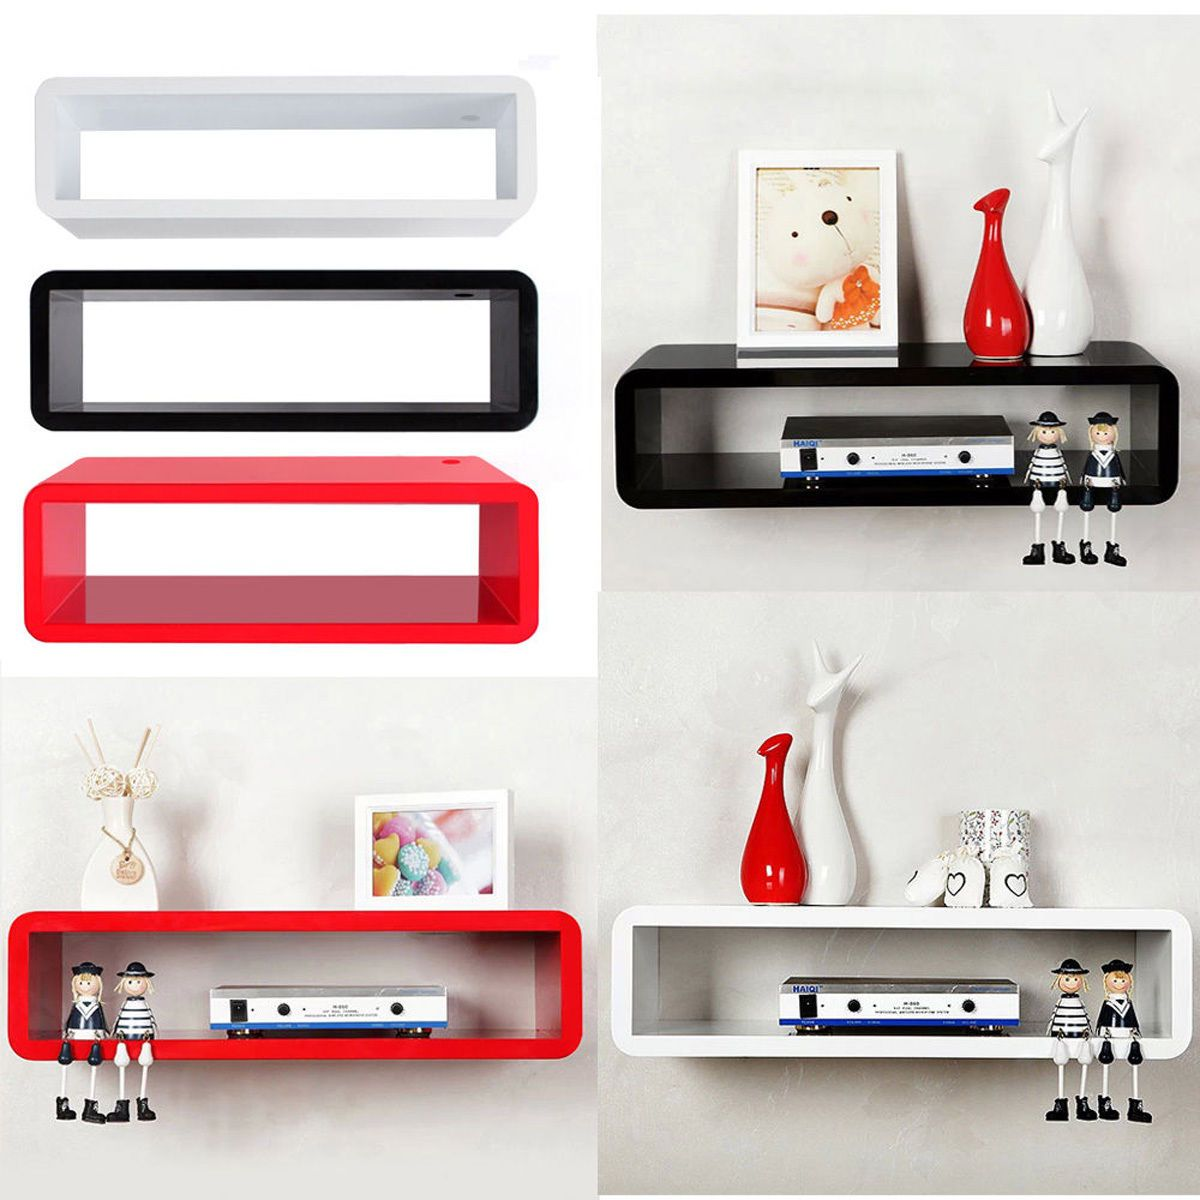 details about floating wall mount shelf cube sky box dvd for hifi unit shelves carrera marble coat holder screws inexpensive bookcase ideas iron corbels granite countertops dunelm